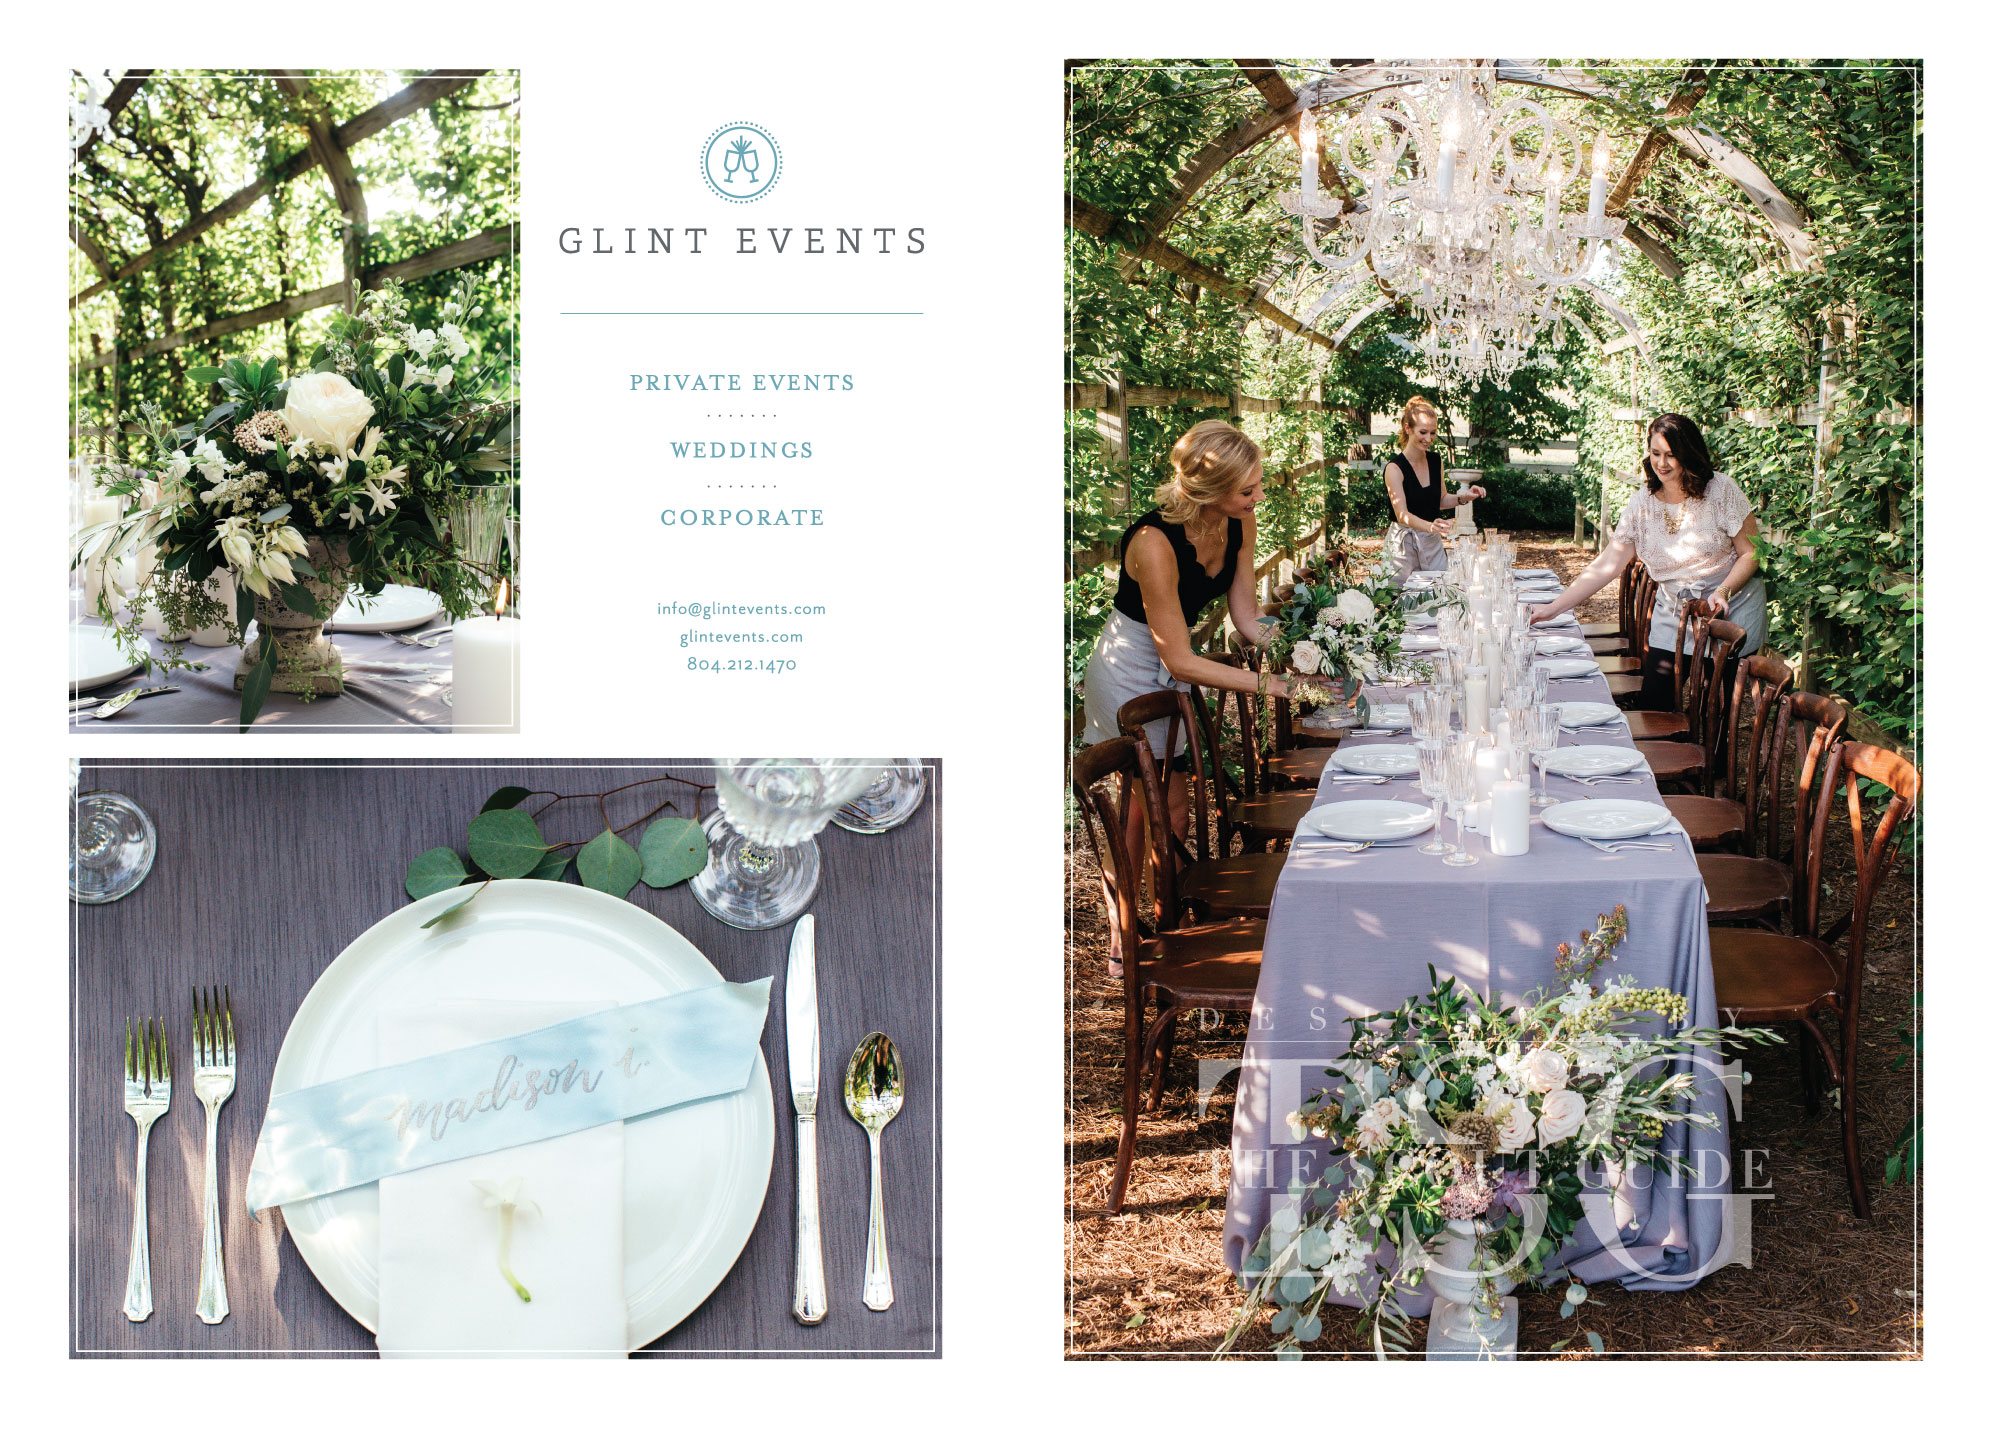 The Scout Guide Richmond, Betty Clicker Photography, Glint Events, Wedding Planner, Corporate Planner, Event Planner, Tuckahoe Plantation, Garden Party, Classic Party Rentals of Virginia, Lighting Professors, Petals & Twigs, candles, greenery